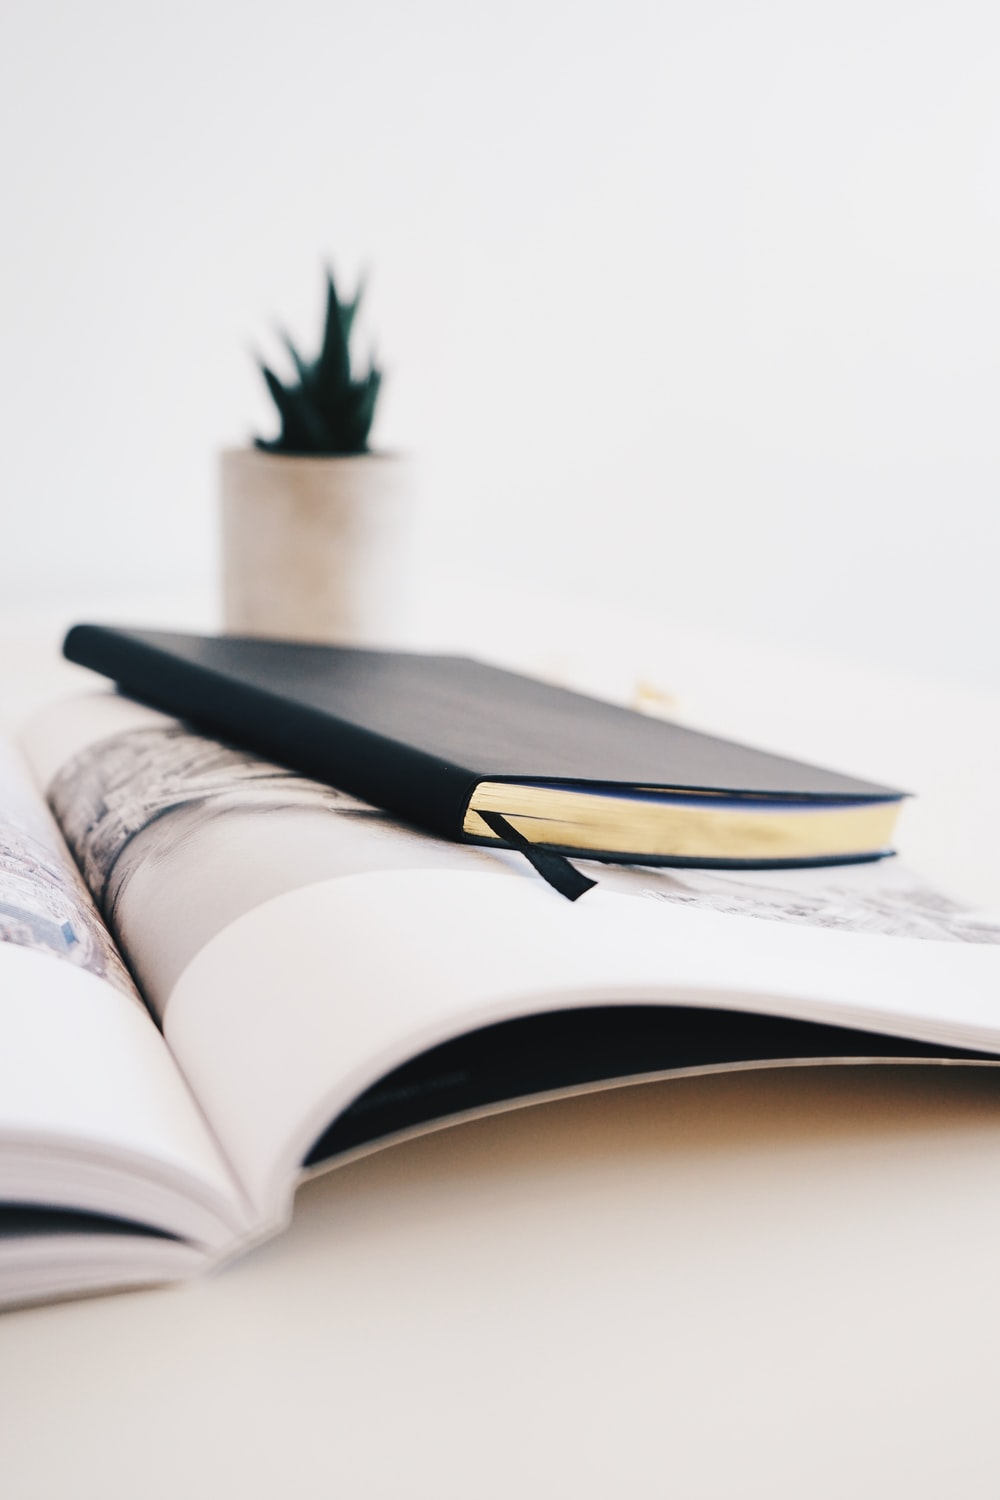 black book on white wooden surface